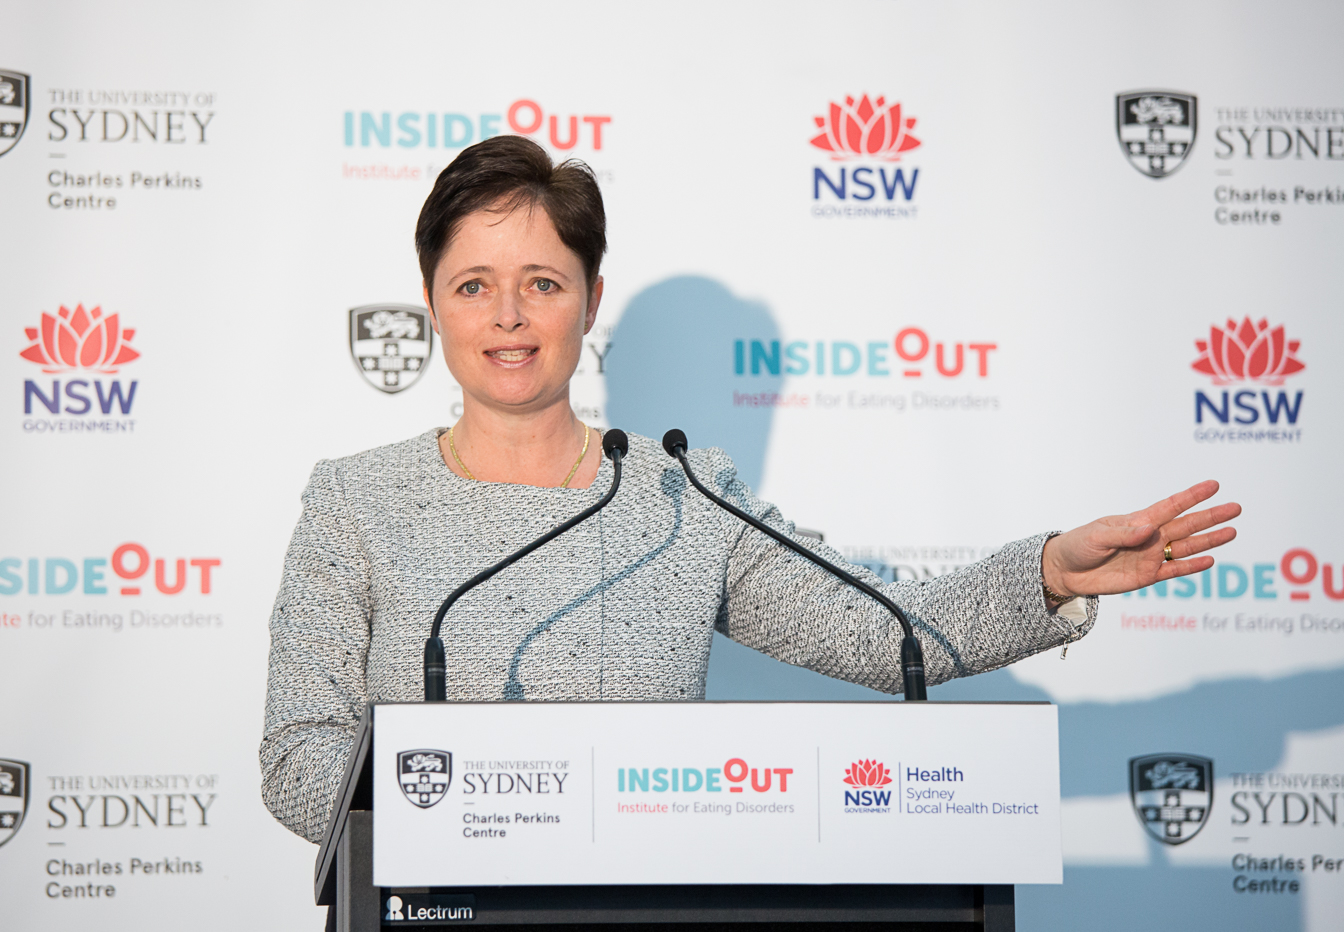 Hon Tanya Davies MP, NSW Minister for Mental Health, launches the InsideOut Institute